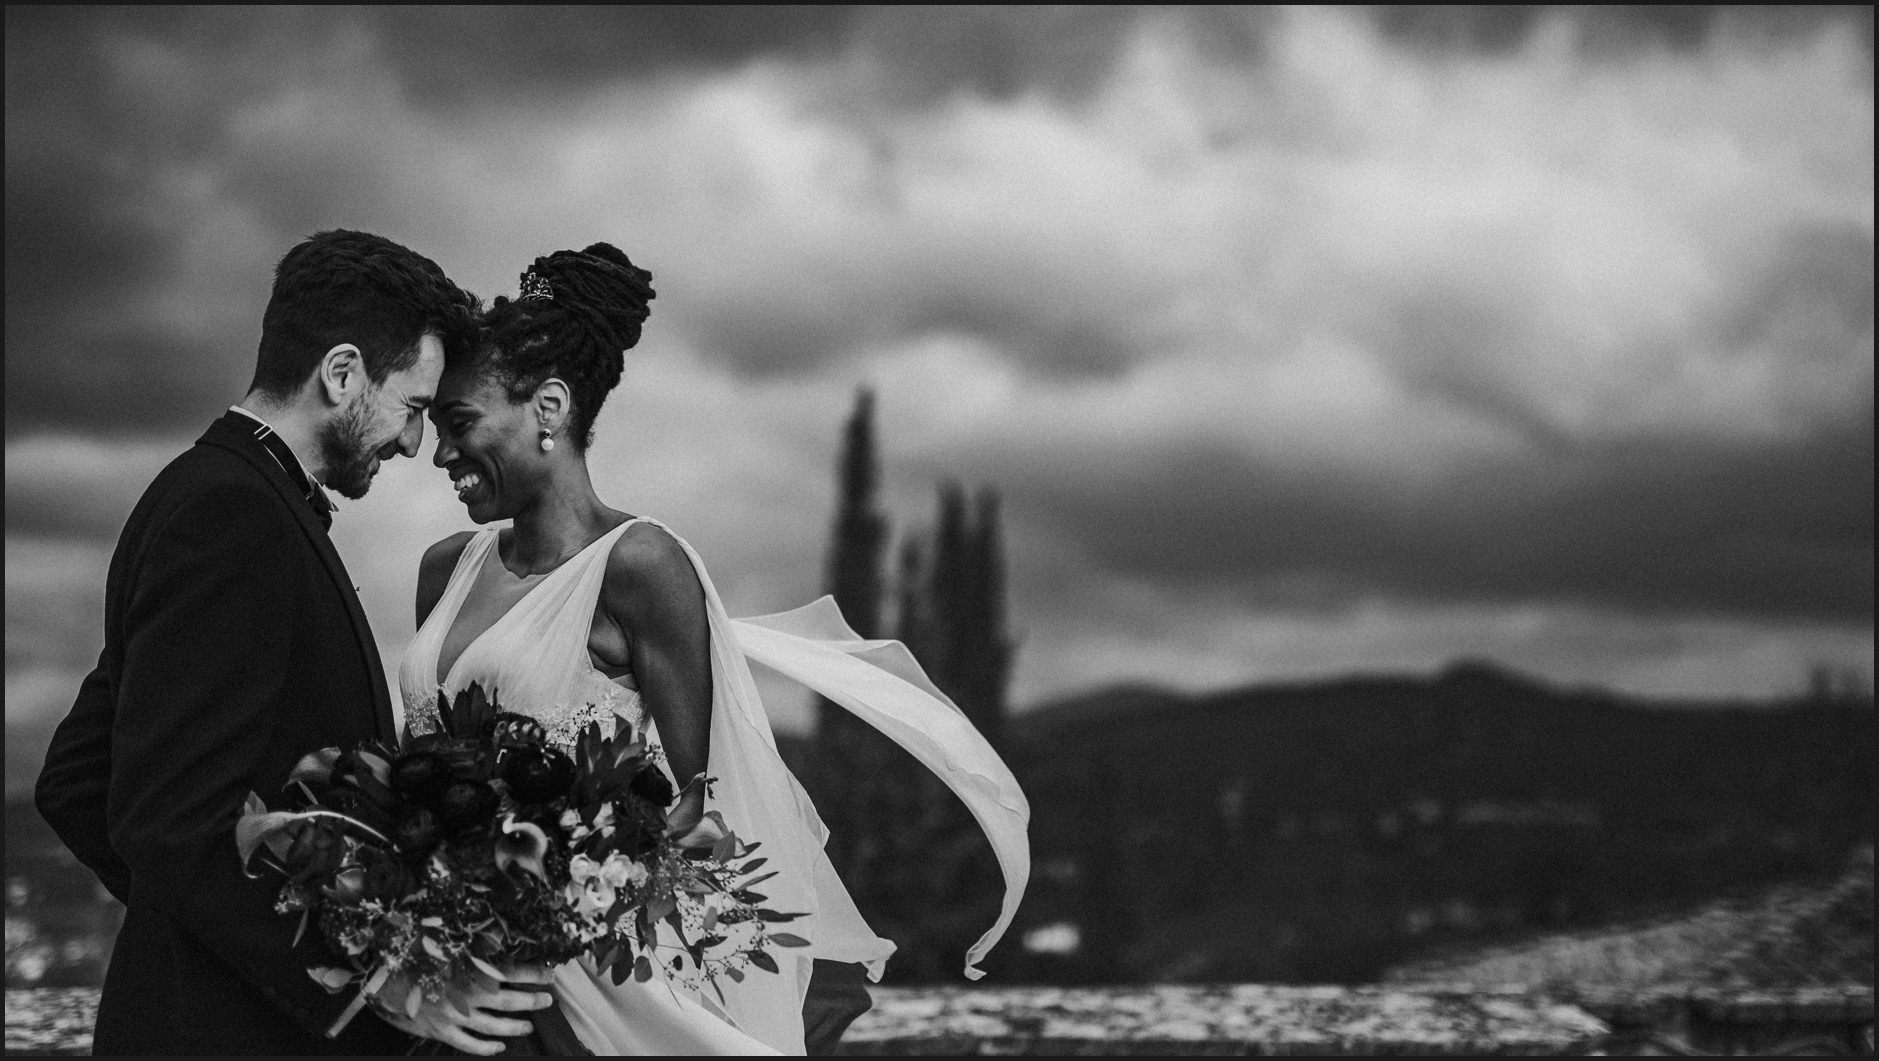 bride, groom, villa medicea di lilliano, wedding, tuscany, portrait, intimate, black and white